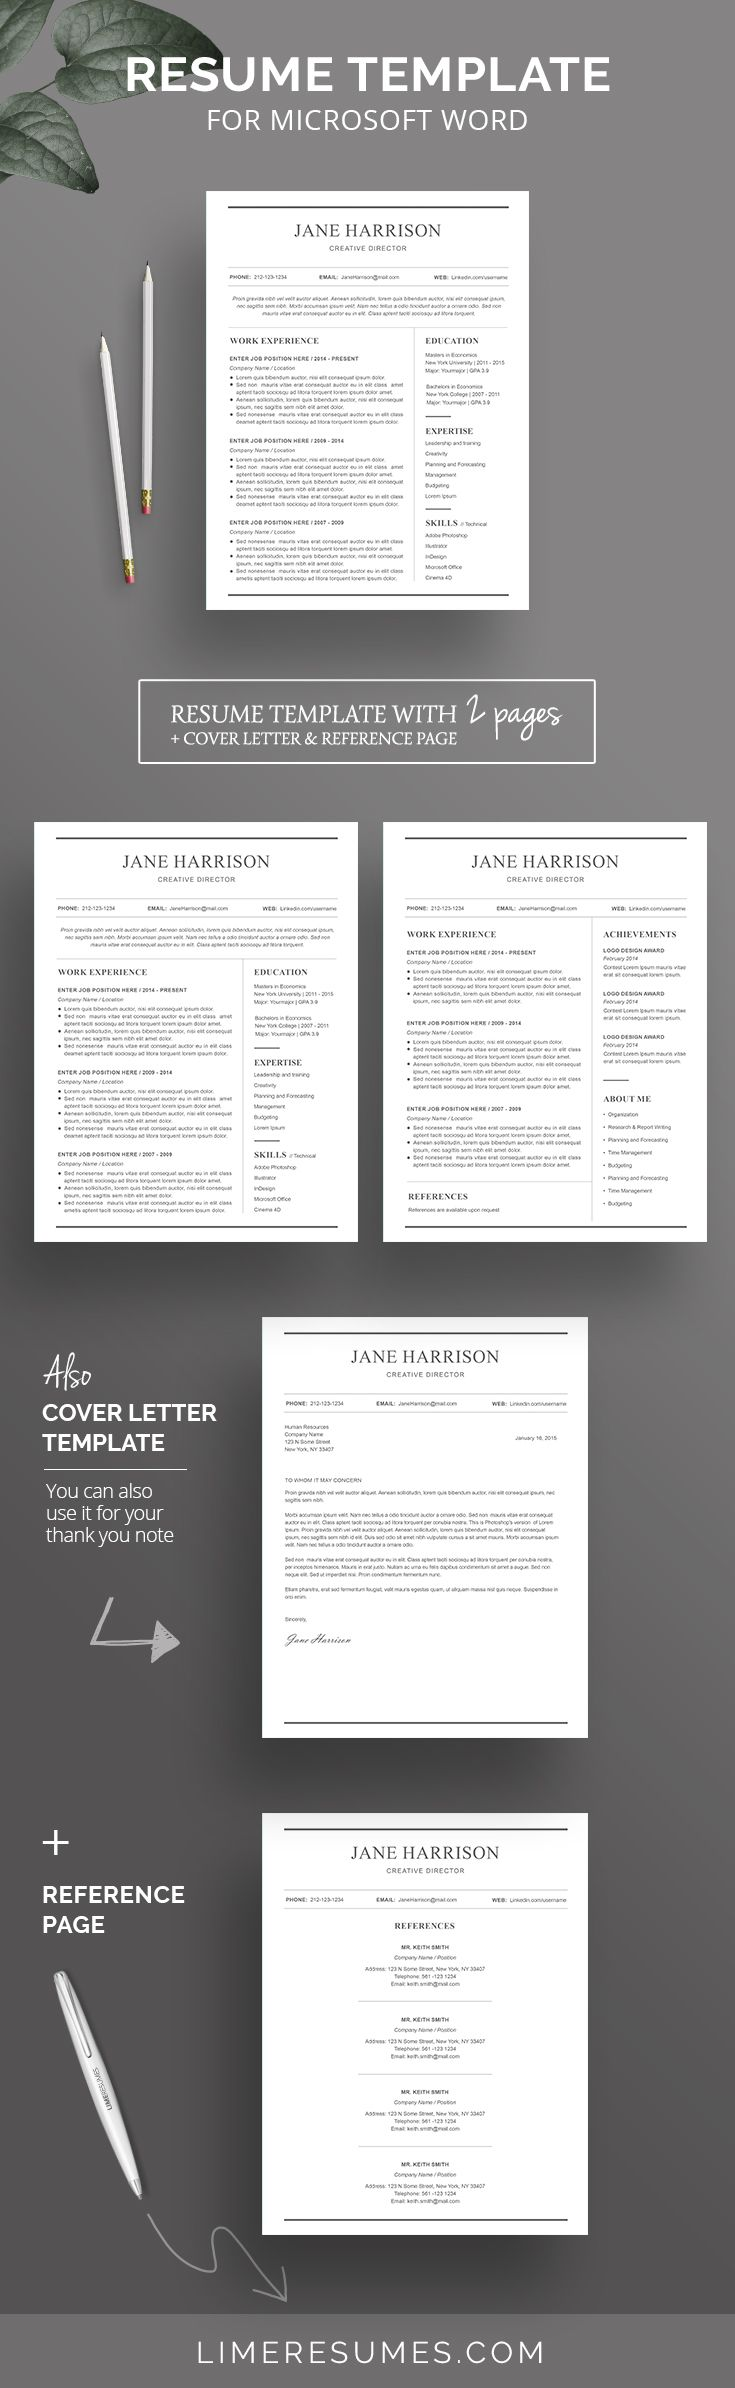 Best 27 Etsy Resume Templates - Etsy CV Templates images on ...